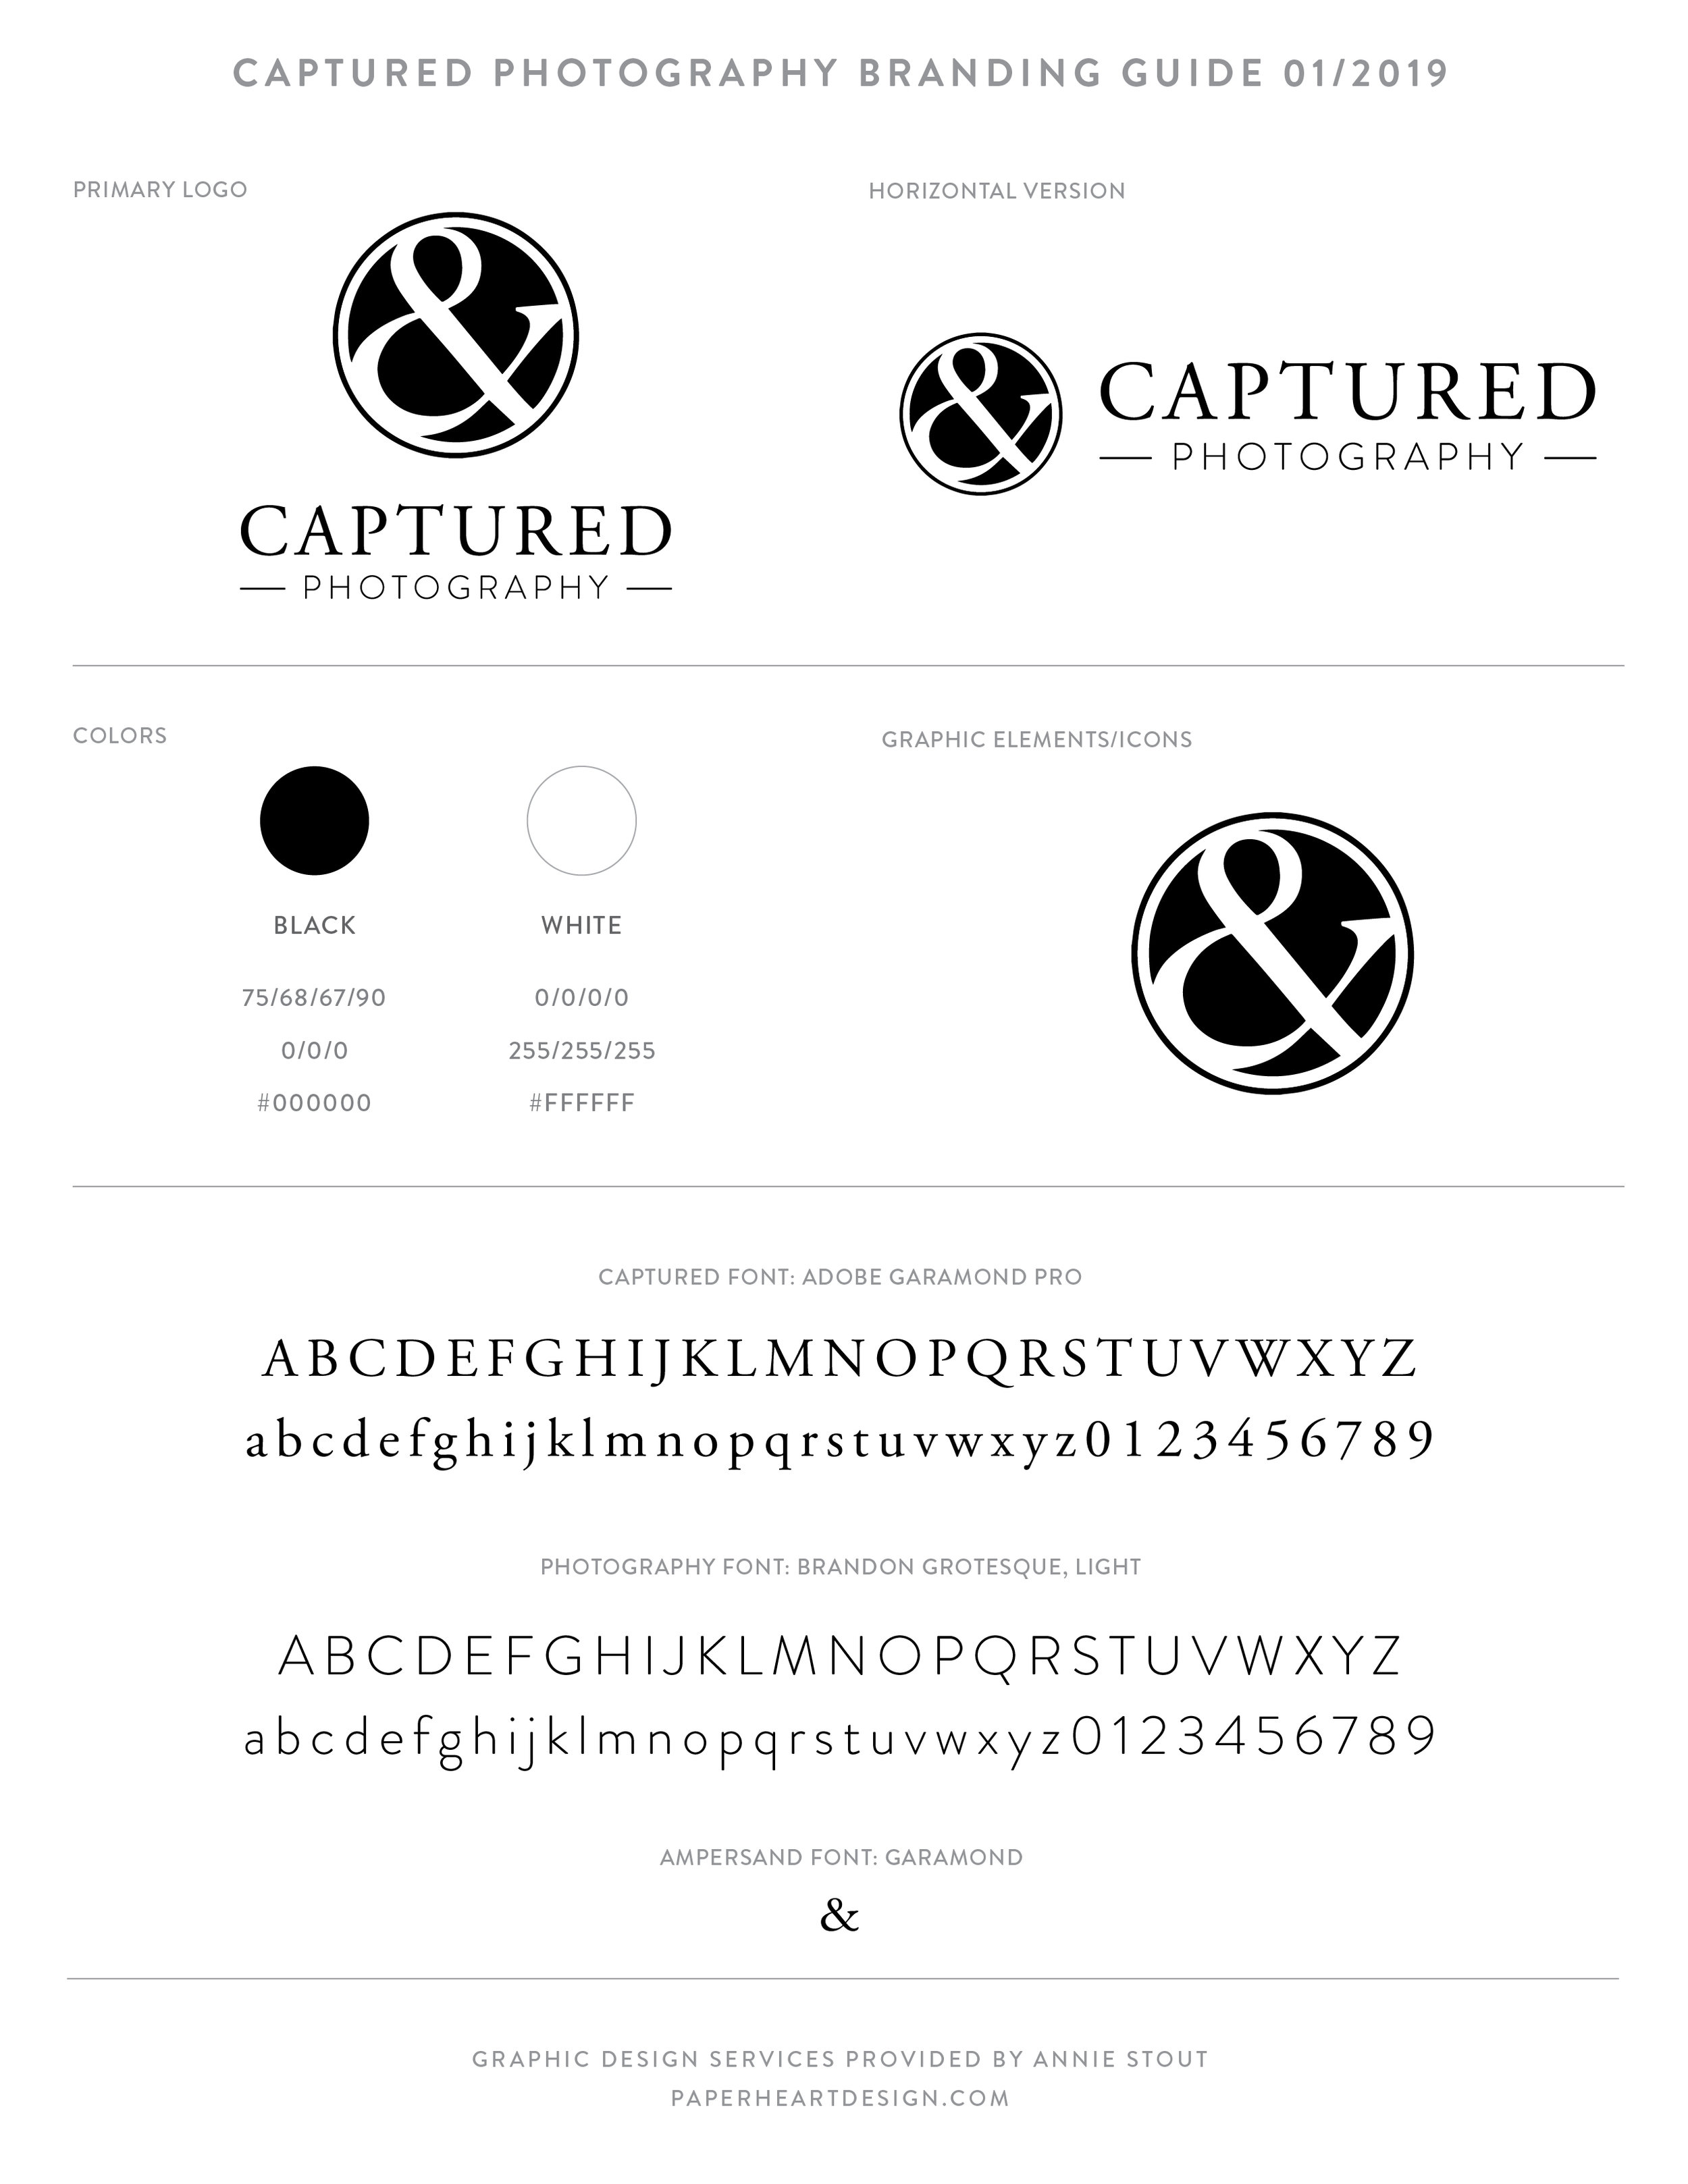 Branding Guide - Captured Photography-01.jpg